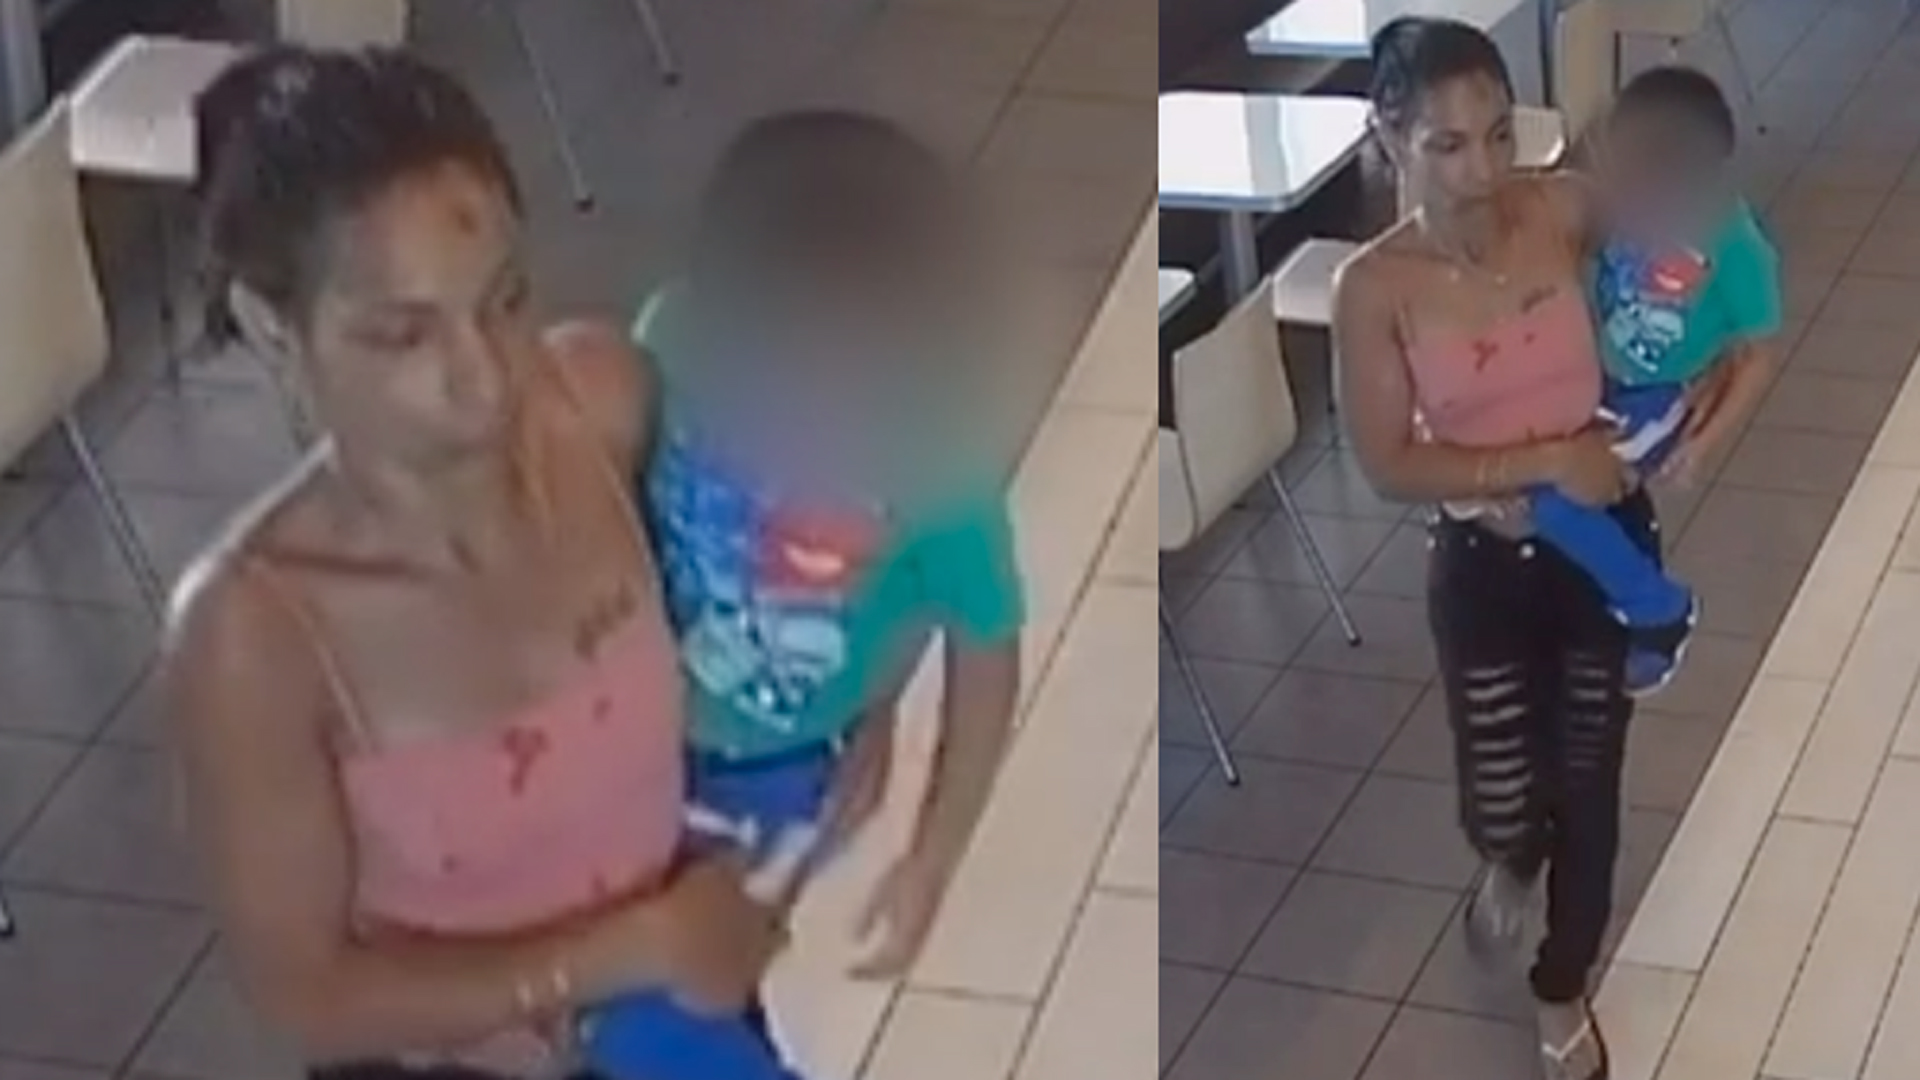 LAPD released these surveillance images of the woman suspected of kidnapping a child at a McDonald's in downtown L.A. May 14, 2019.